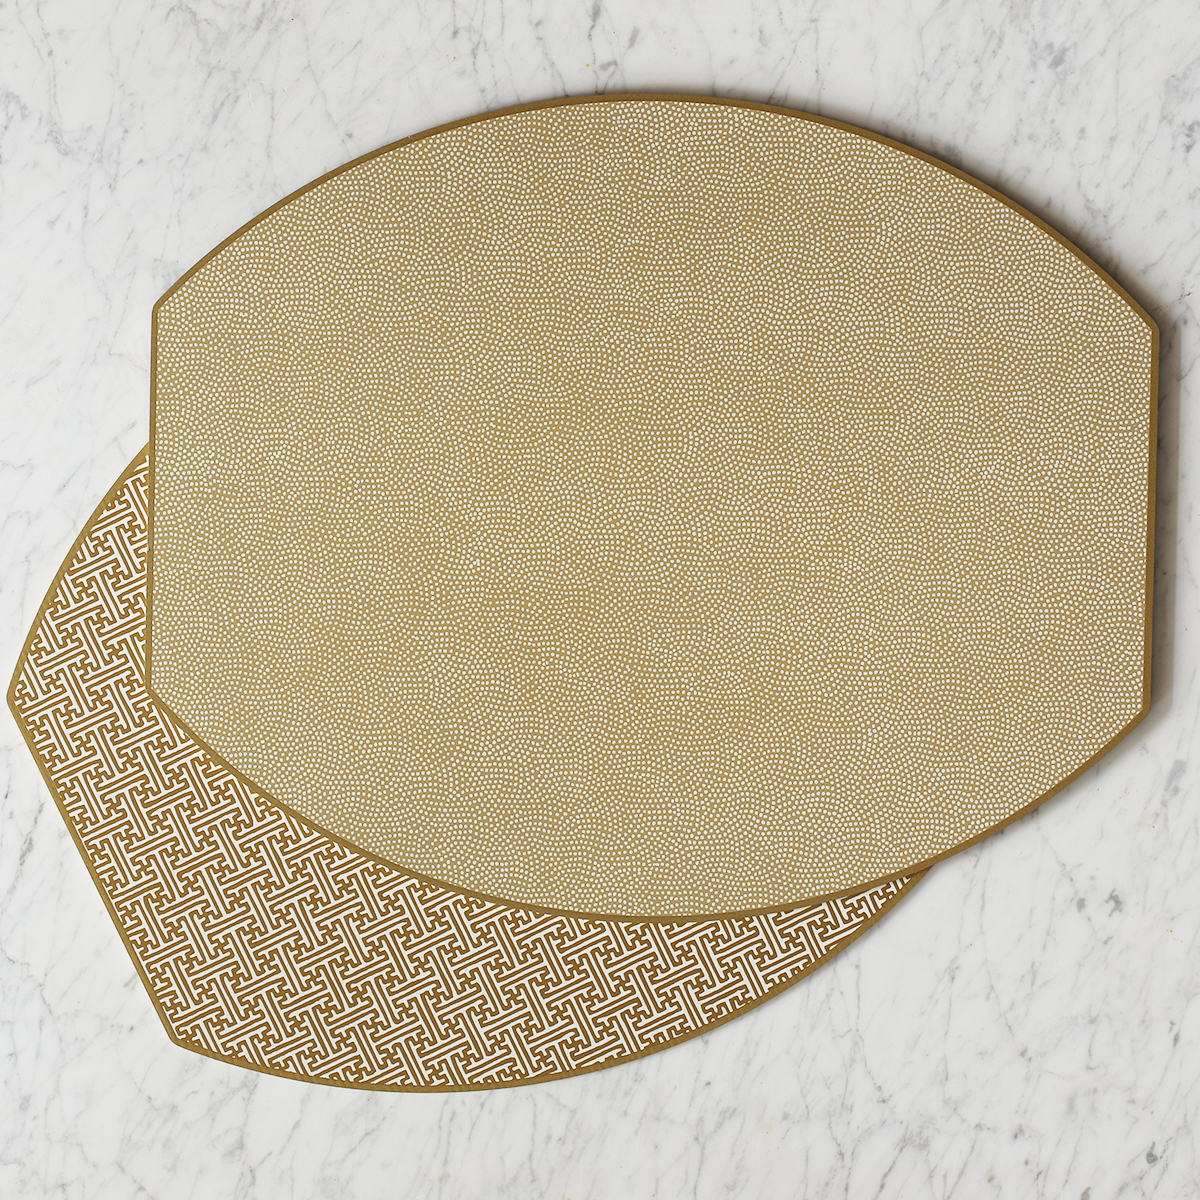 Vatterott-Bruntrager Holly Stuart Ellipse Reversible Placemat, Set of 4 | Shimmer